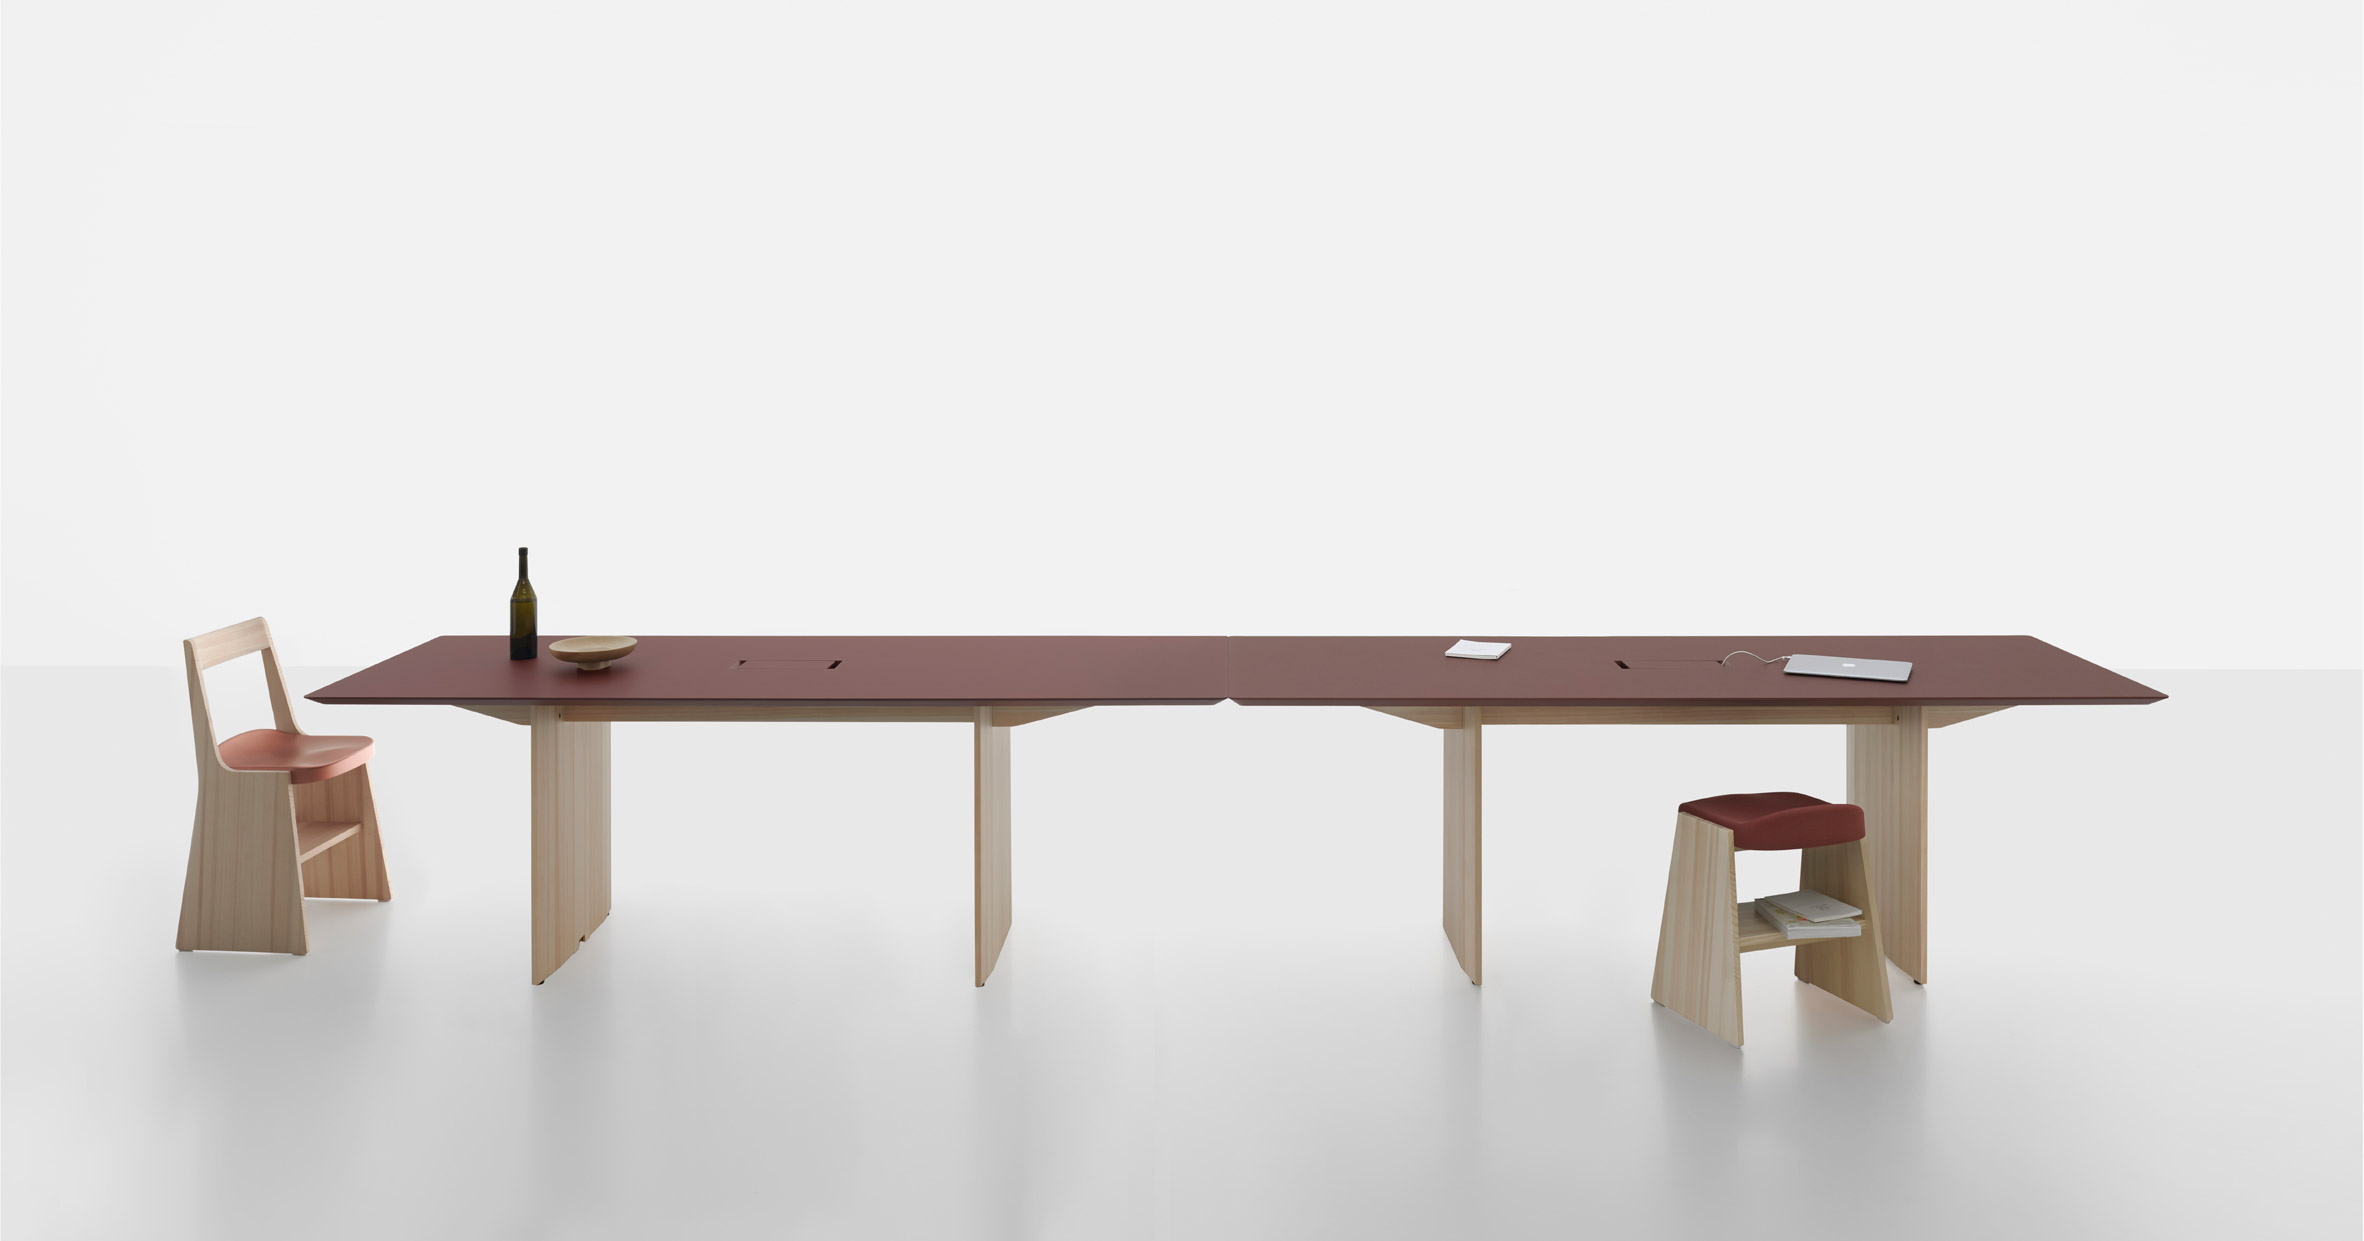 Fronda table and Soft Fronda stool and chair by Industrial Facility for Mattiazzi